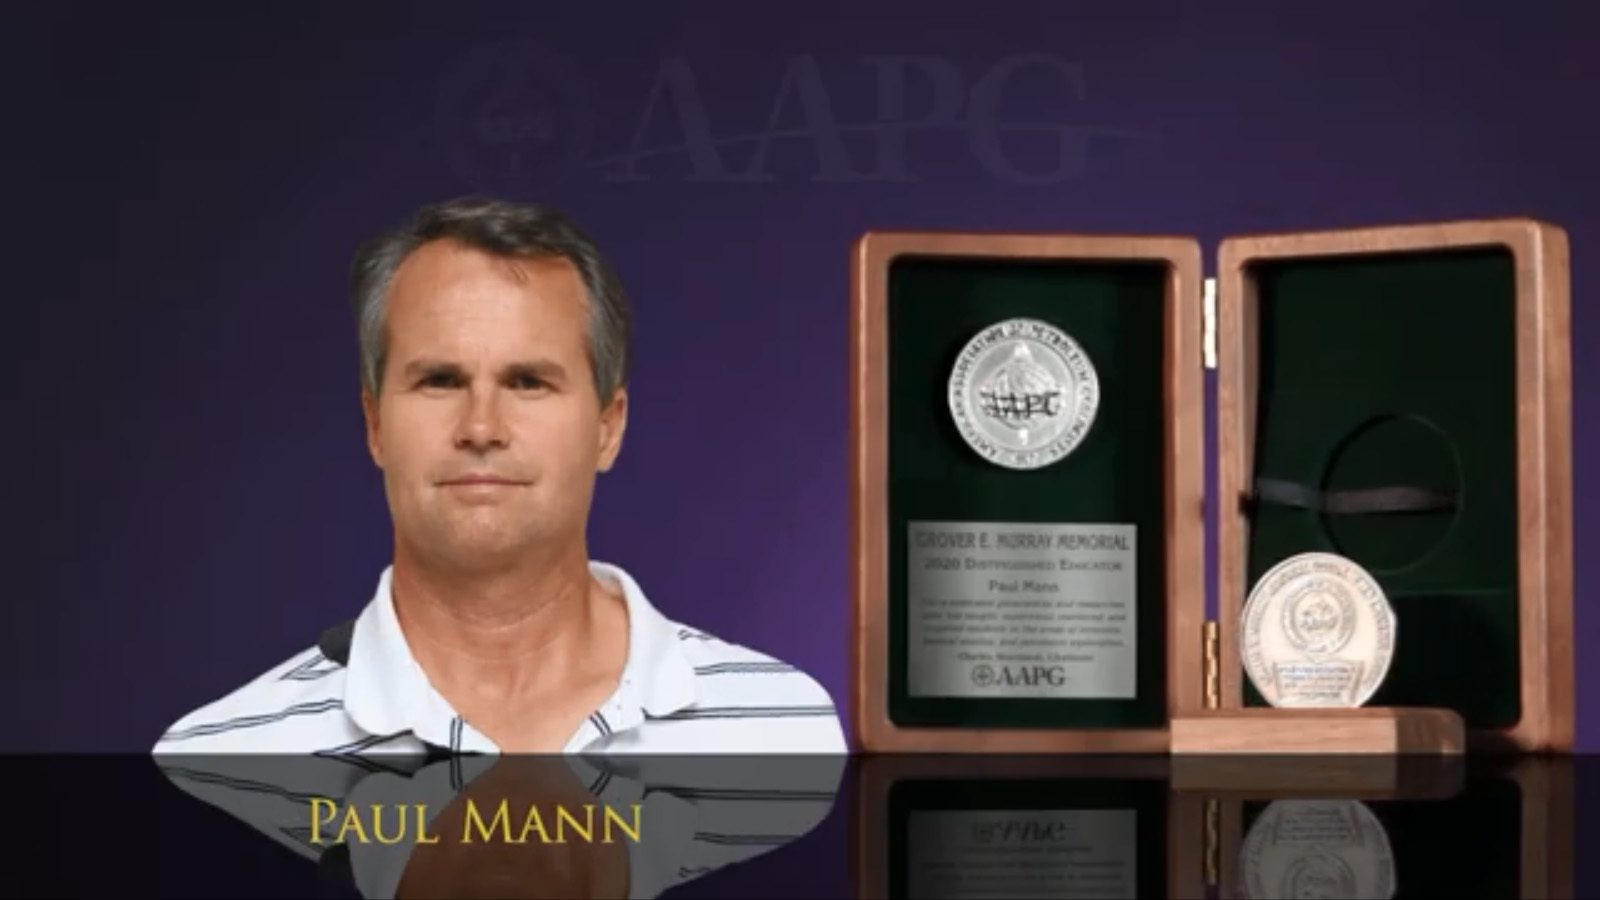 Dr. Paul Mann receives the Grover E. Murray Memorial Distinguished Educator Award from AAPG in October 2020.